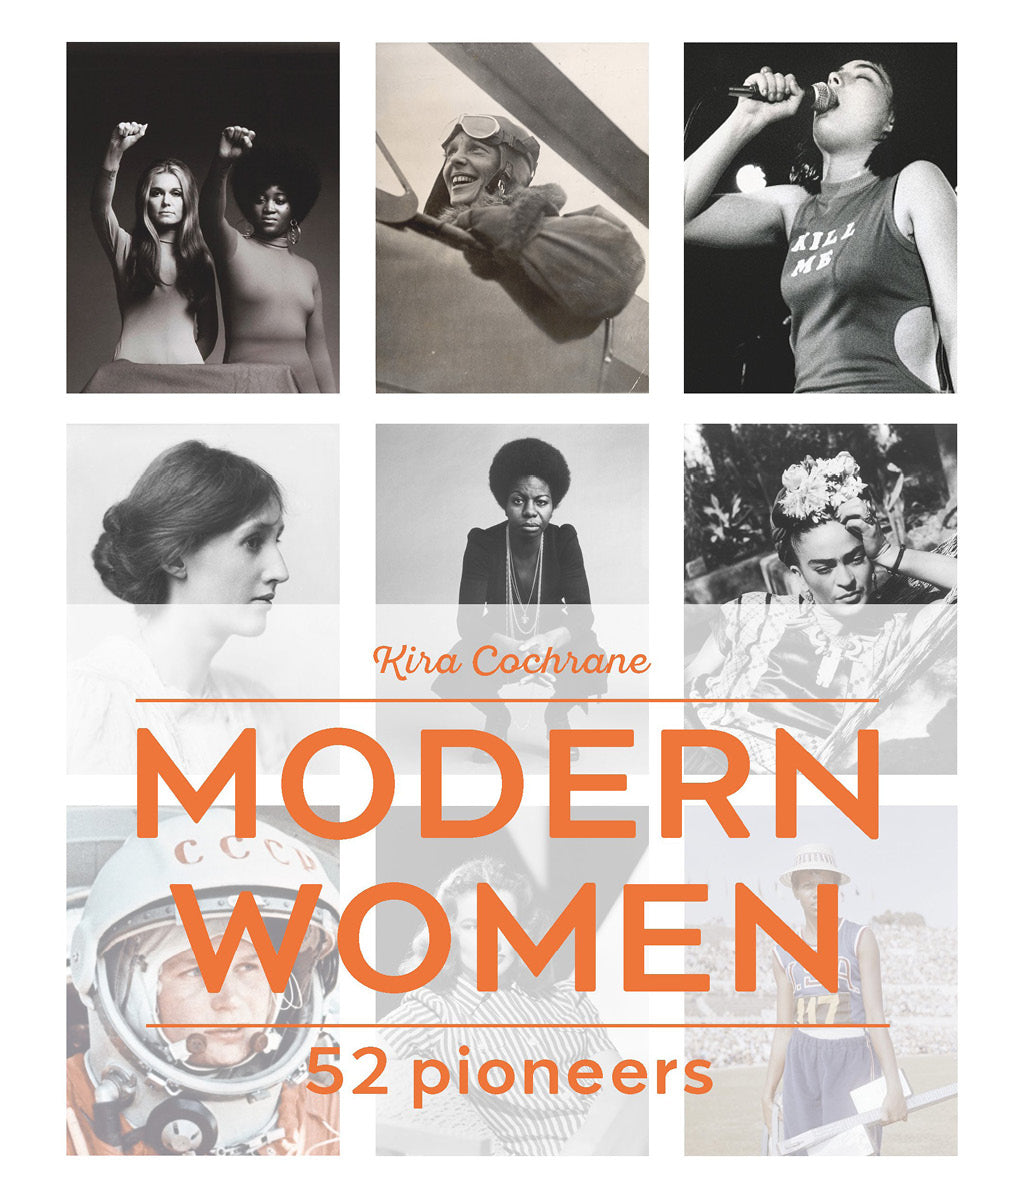 Modern Women: 52 Pioneers by Kira Cochrane